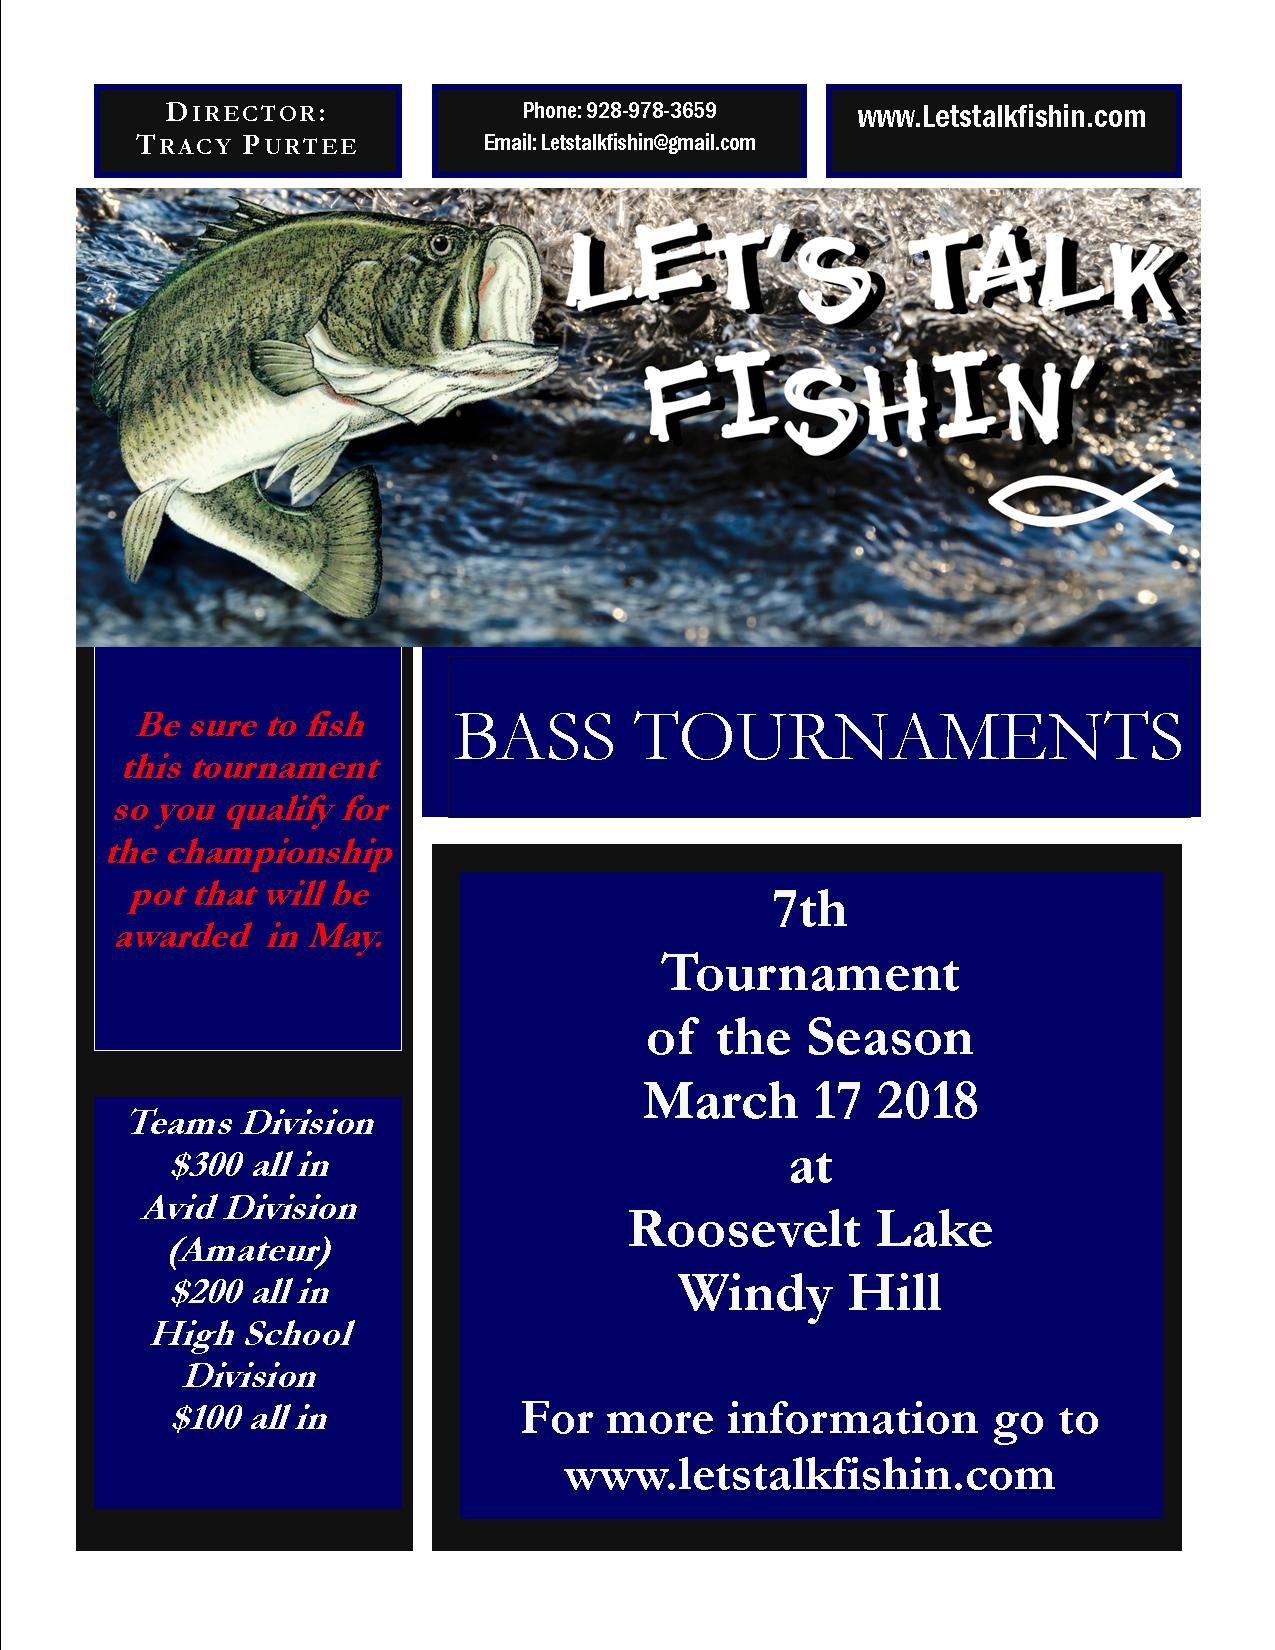 Click image for larger version  Name:7th Tournament.jpg Views:1856 Size:283.6 KB ID:96826